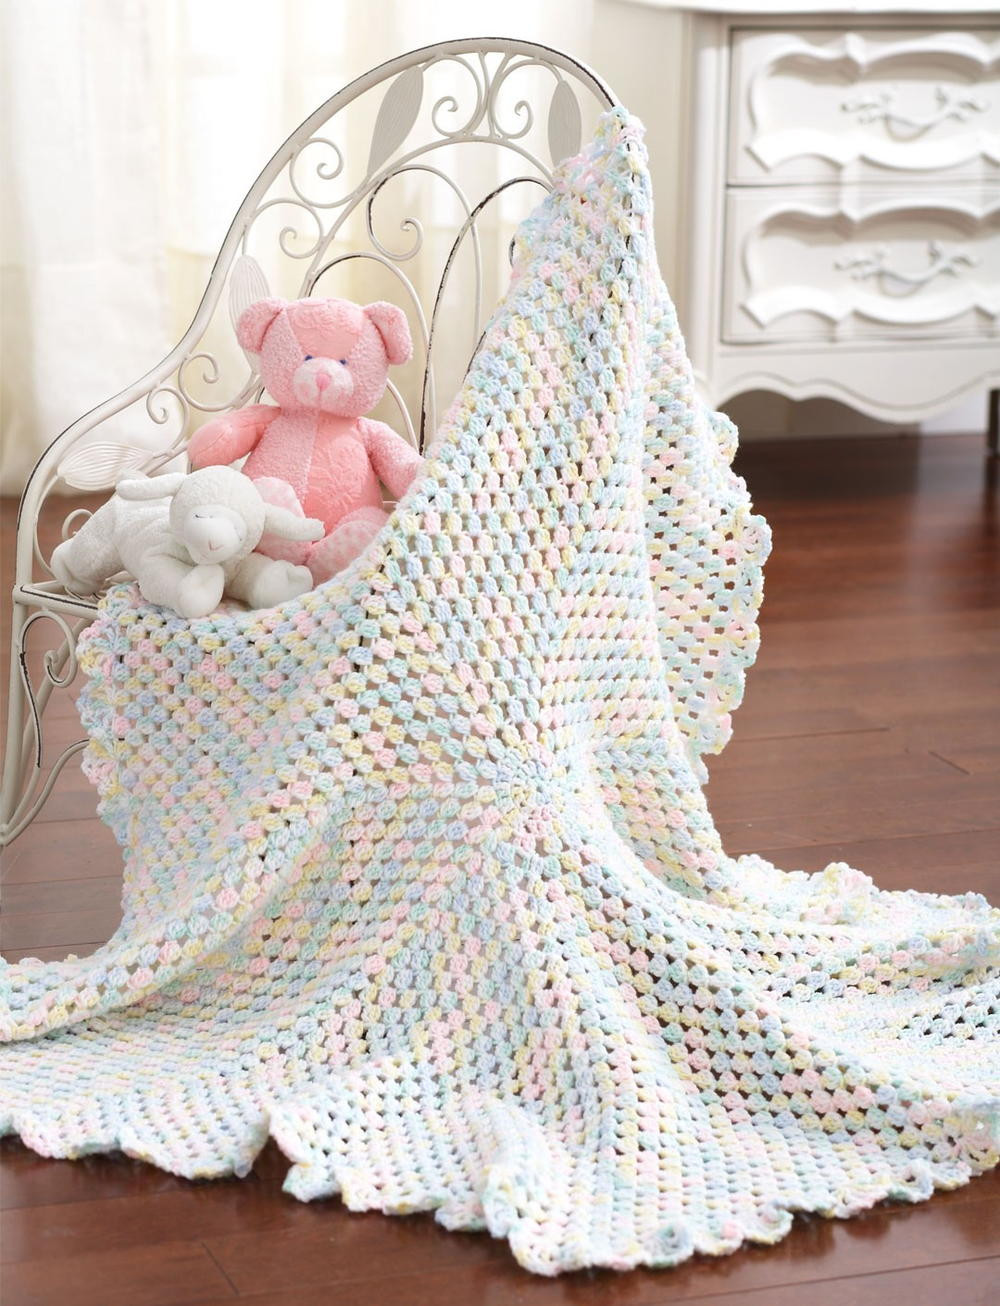 Crochet Throws Patterns Inspirational Marshmallow Baby Blanket Of Wonderful 44 Images Crochet Throws Patterns